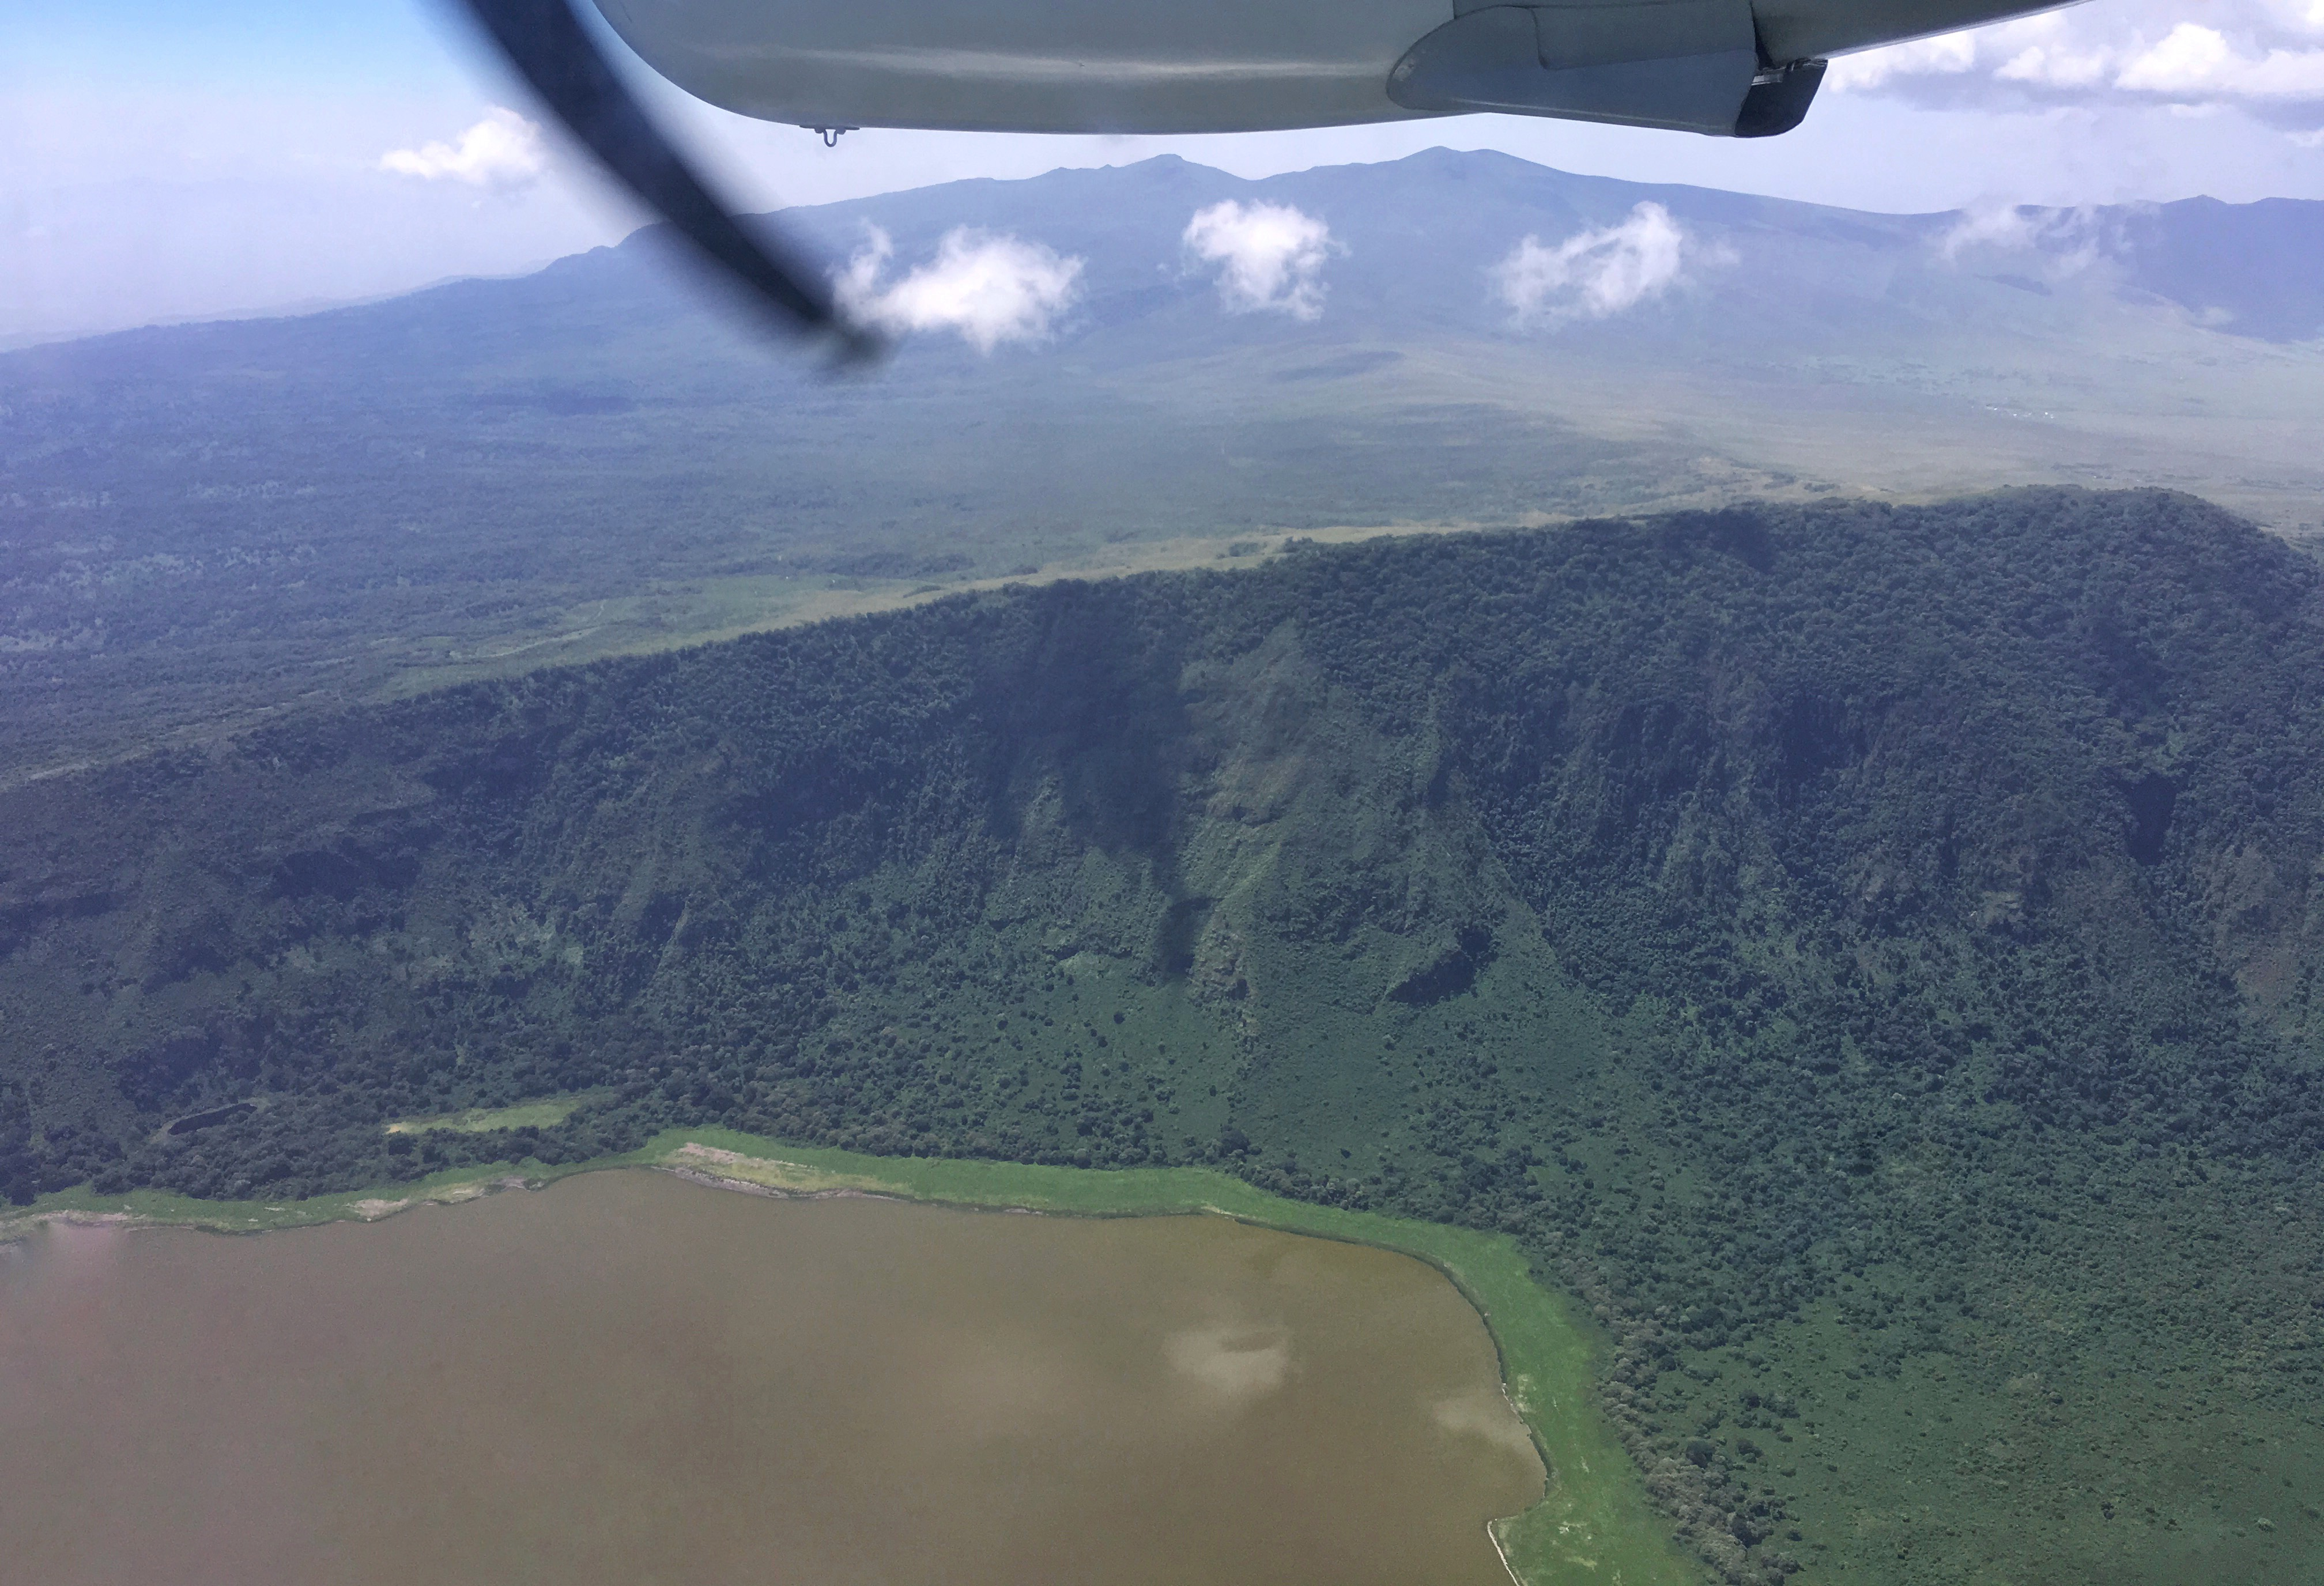 Here is the photo Brian took of the Empakai Crater.  He hiked on the high ridge overlooking the crater, and camped up there, to eventually descend down into the Rift Valley.